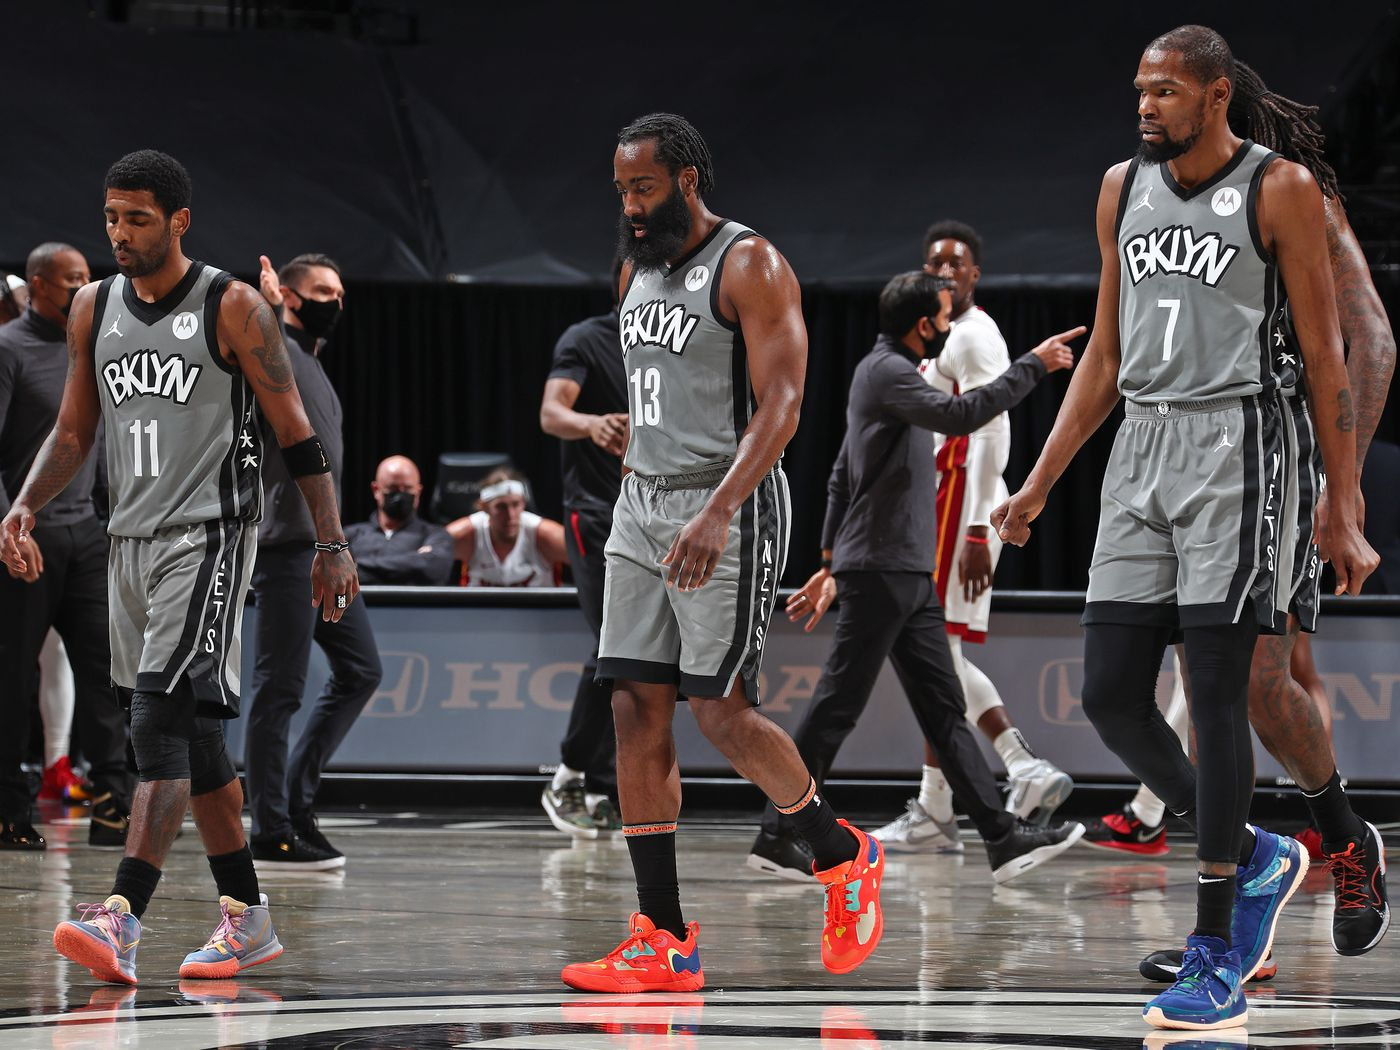 Nets 'Big Three' all among top 10 of highest paid NBA players - NetsDaily